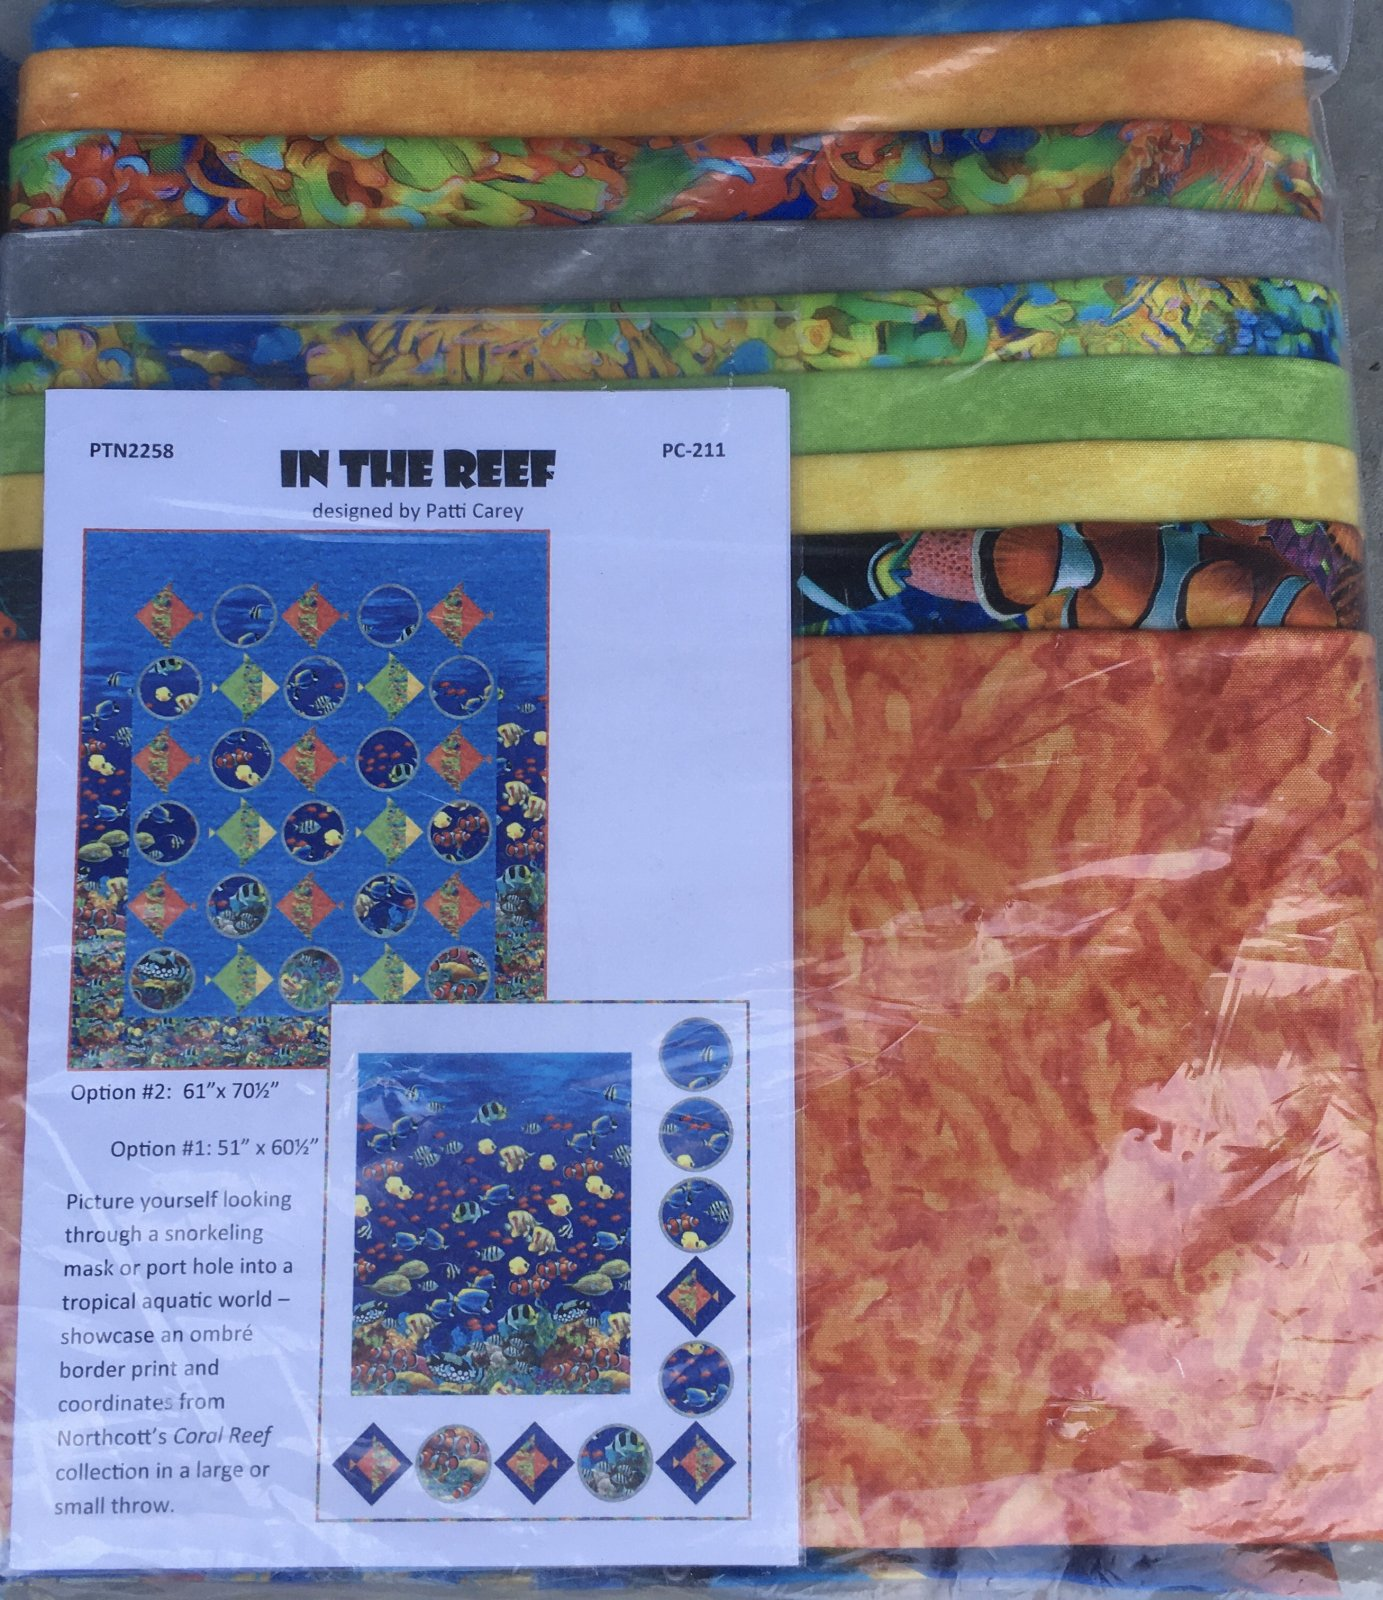 In The Reef Quilt Pattern Kit by Patty Carey - Option 2 size 61 x 70 1/2